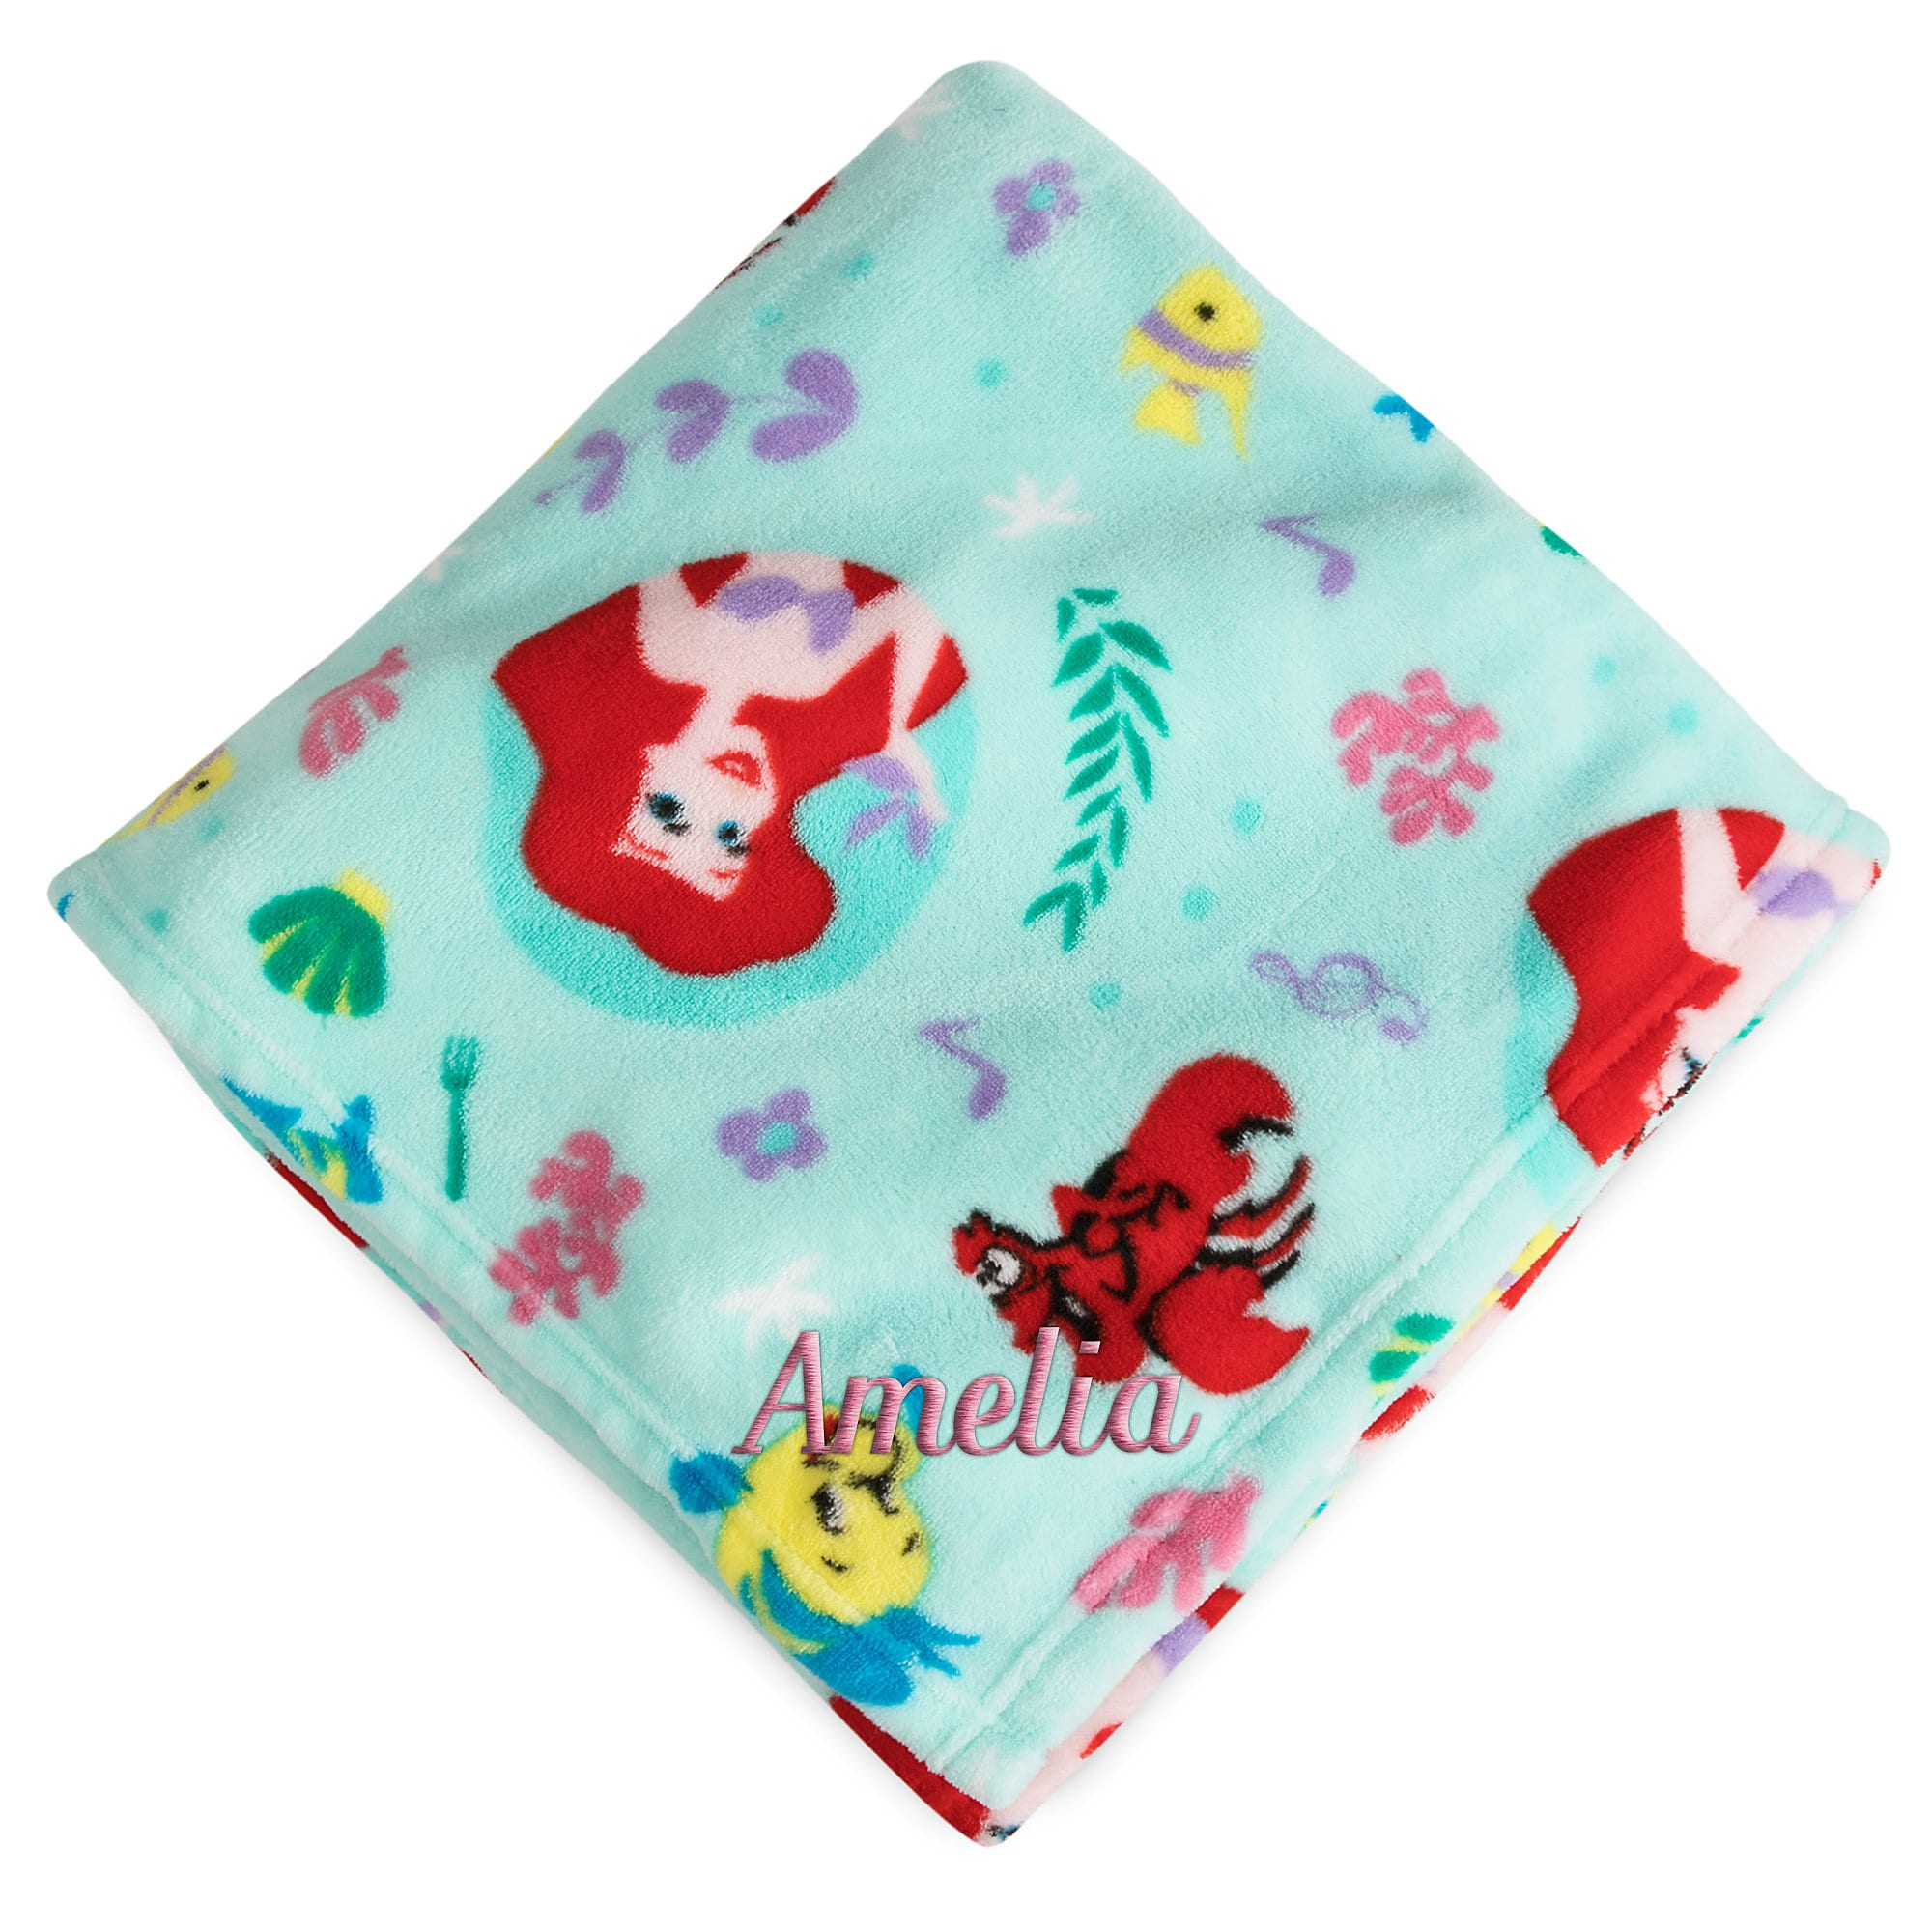 Ariel, Flounder, and Sebastian Fleece Throw - Personalizable - The Little Mermaid